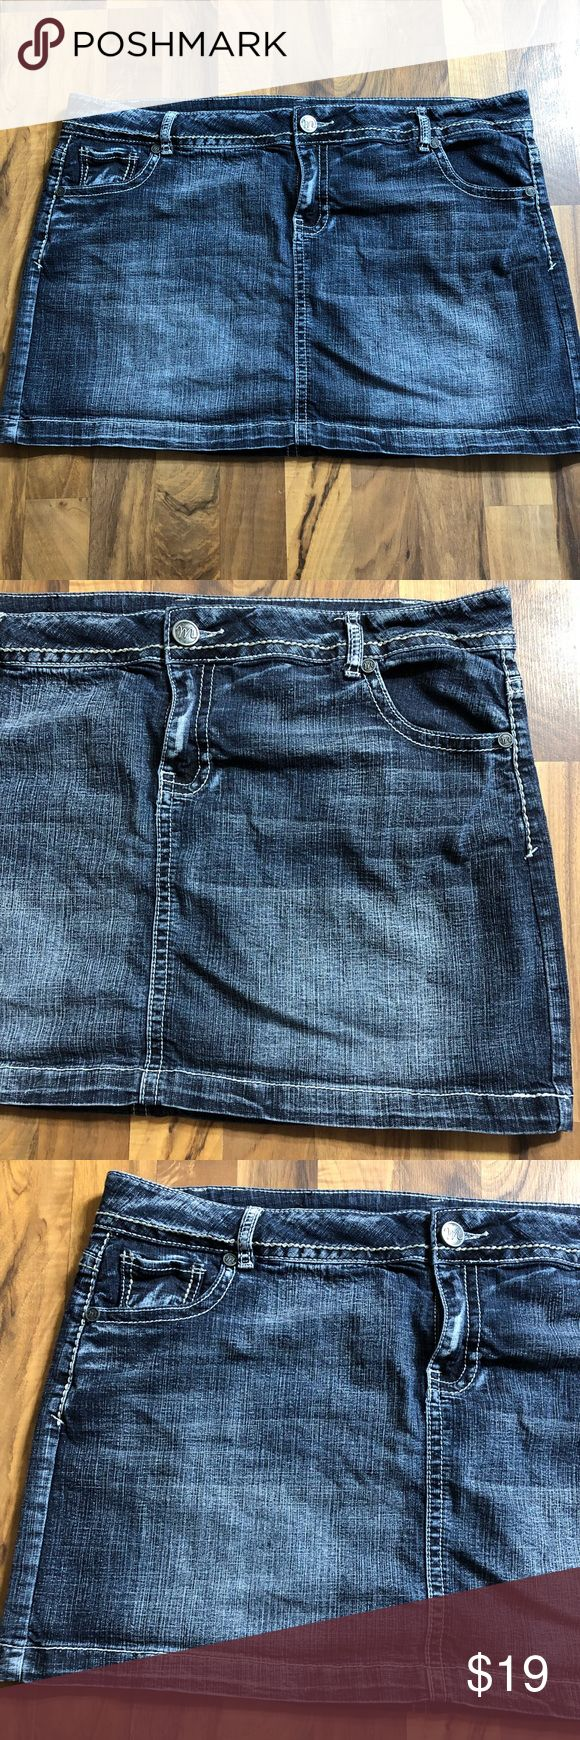 Maurices Size 20 Sexy Blue Jean Mini Skirt This skirt is up for sale! Great condition! Cute!  ❤ Medium blue jean  ❤ Great thread accents, cute butt pockets  ❤ Stretchy material ❤ Size Measured in Pictures 🔍📏   ✅ Bundle up items and save 💲✅  ❤️I love reasonable offers. ❤️ 🎉 Pair w/jewelry, acc. or shoes🎉 🆕 New items every week! 🆕  I'm a mama on a mission. I sell items online to support my 2 sons. Every purchase is important to us. Thanks for your support. Maurices Skirts Mini